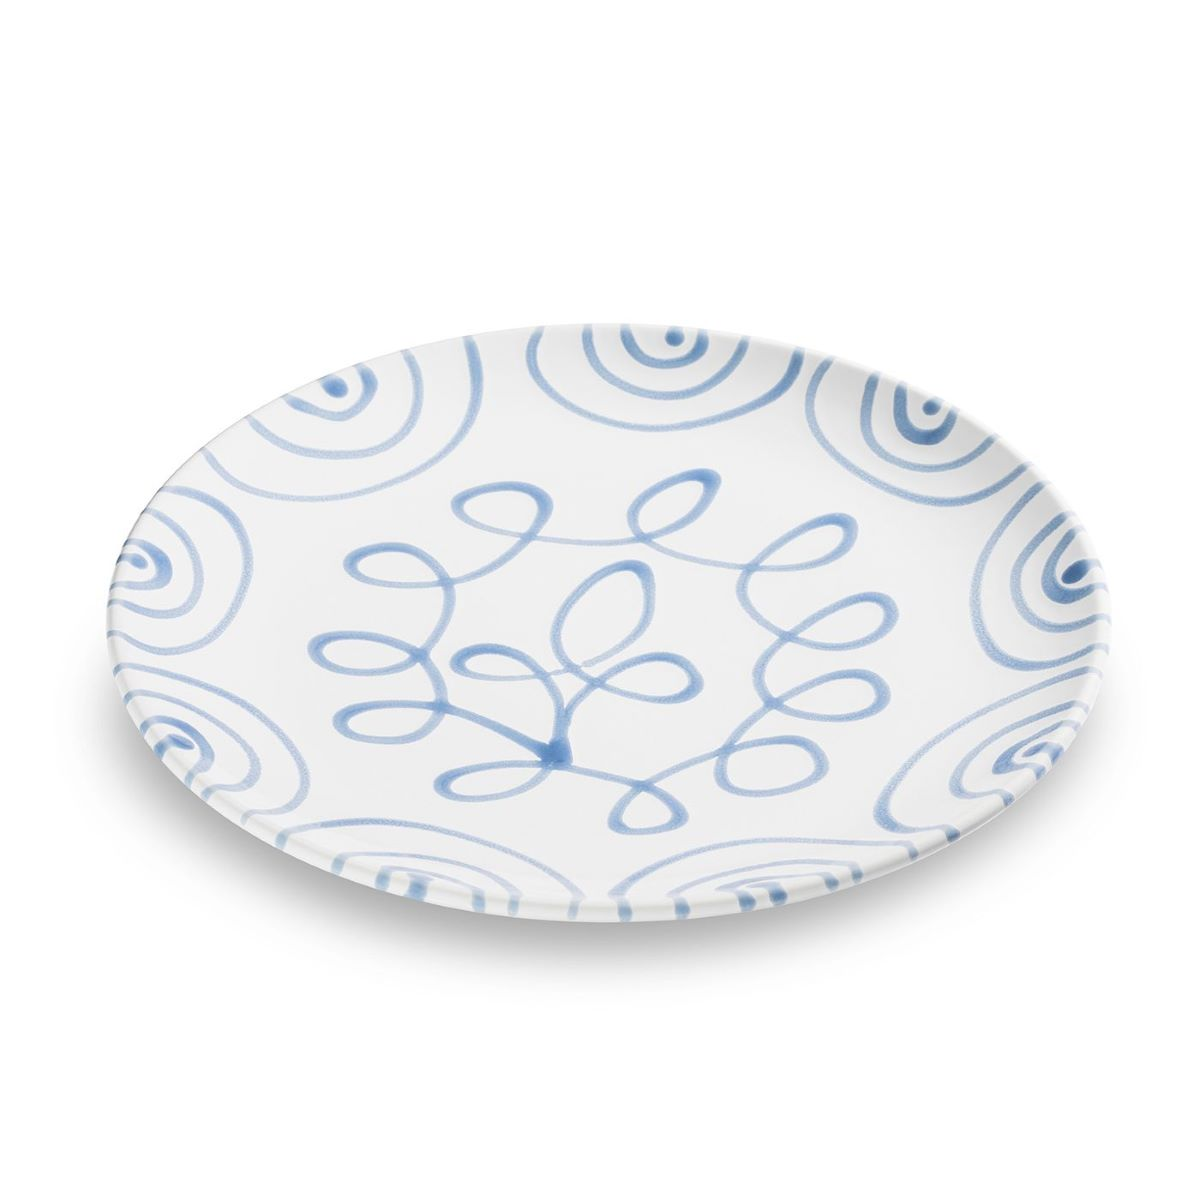 Dizzy Blue Coupe Dinner Plate 9.8